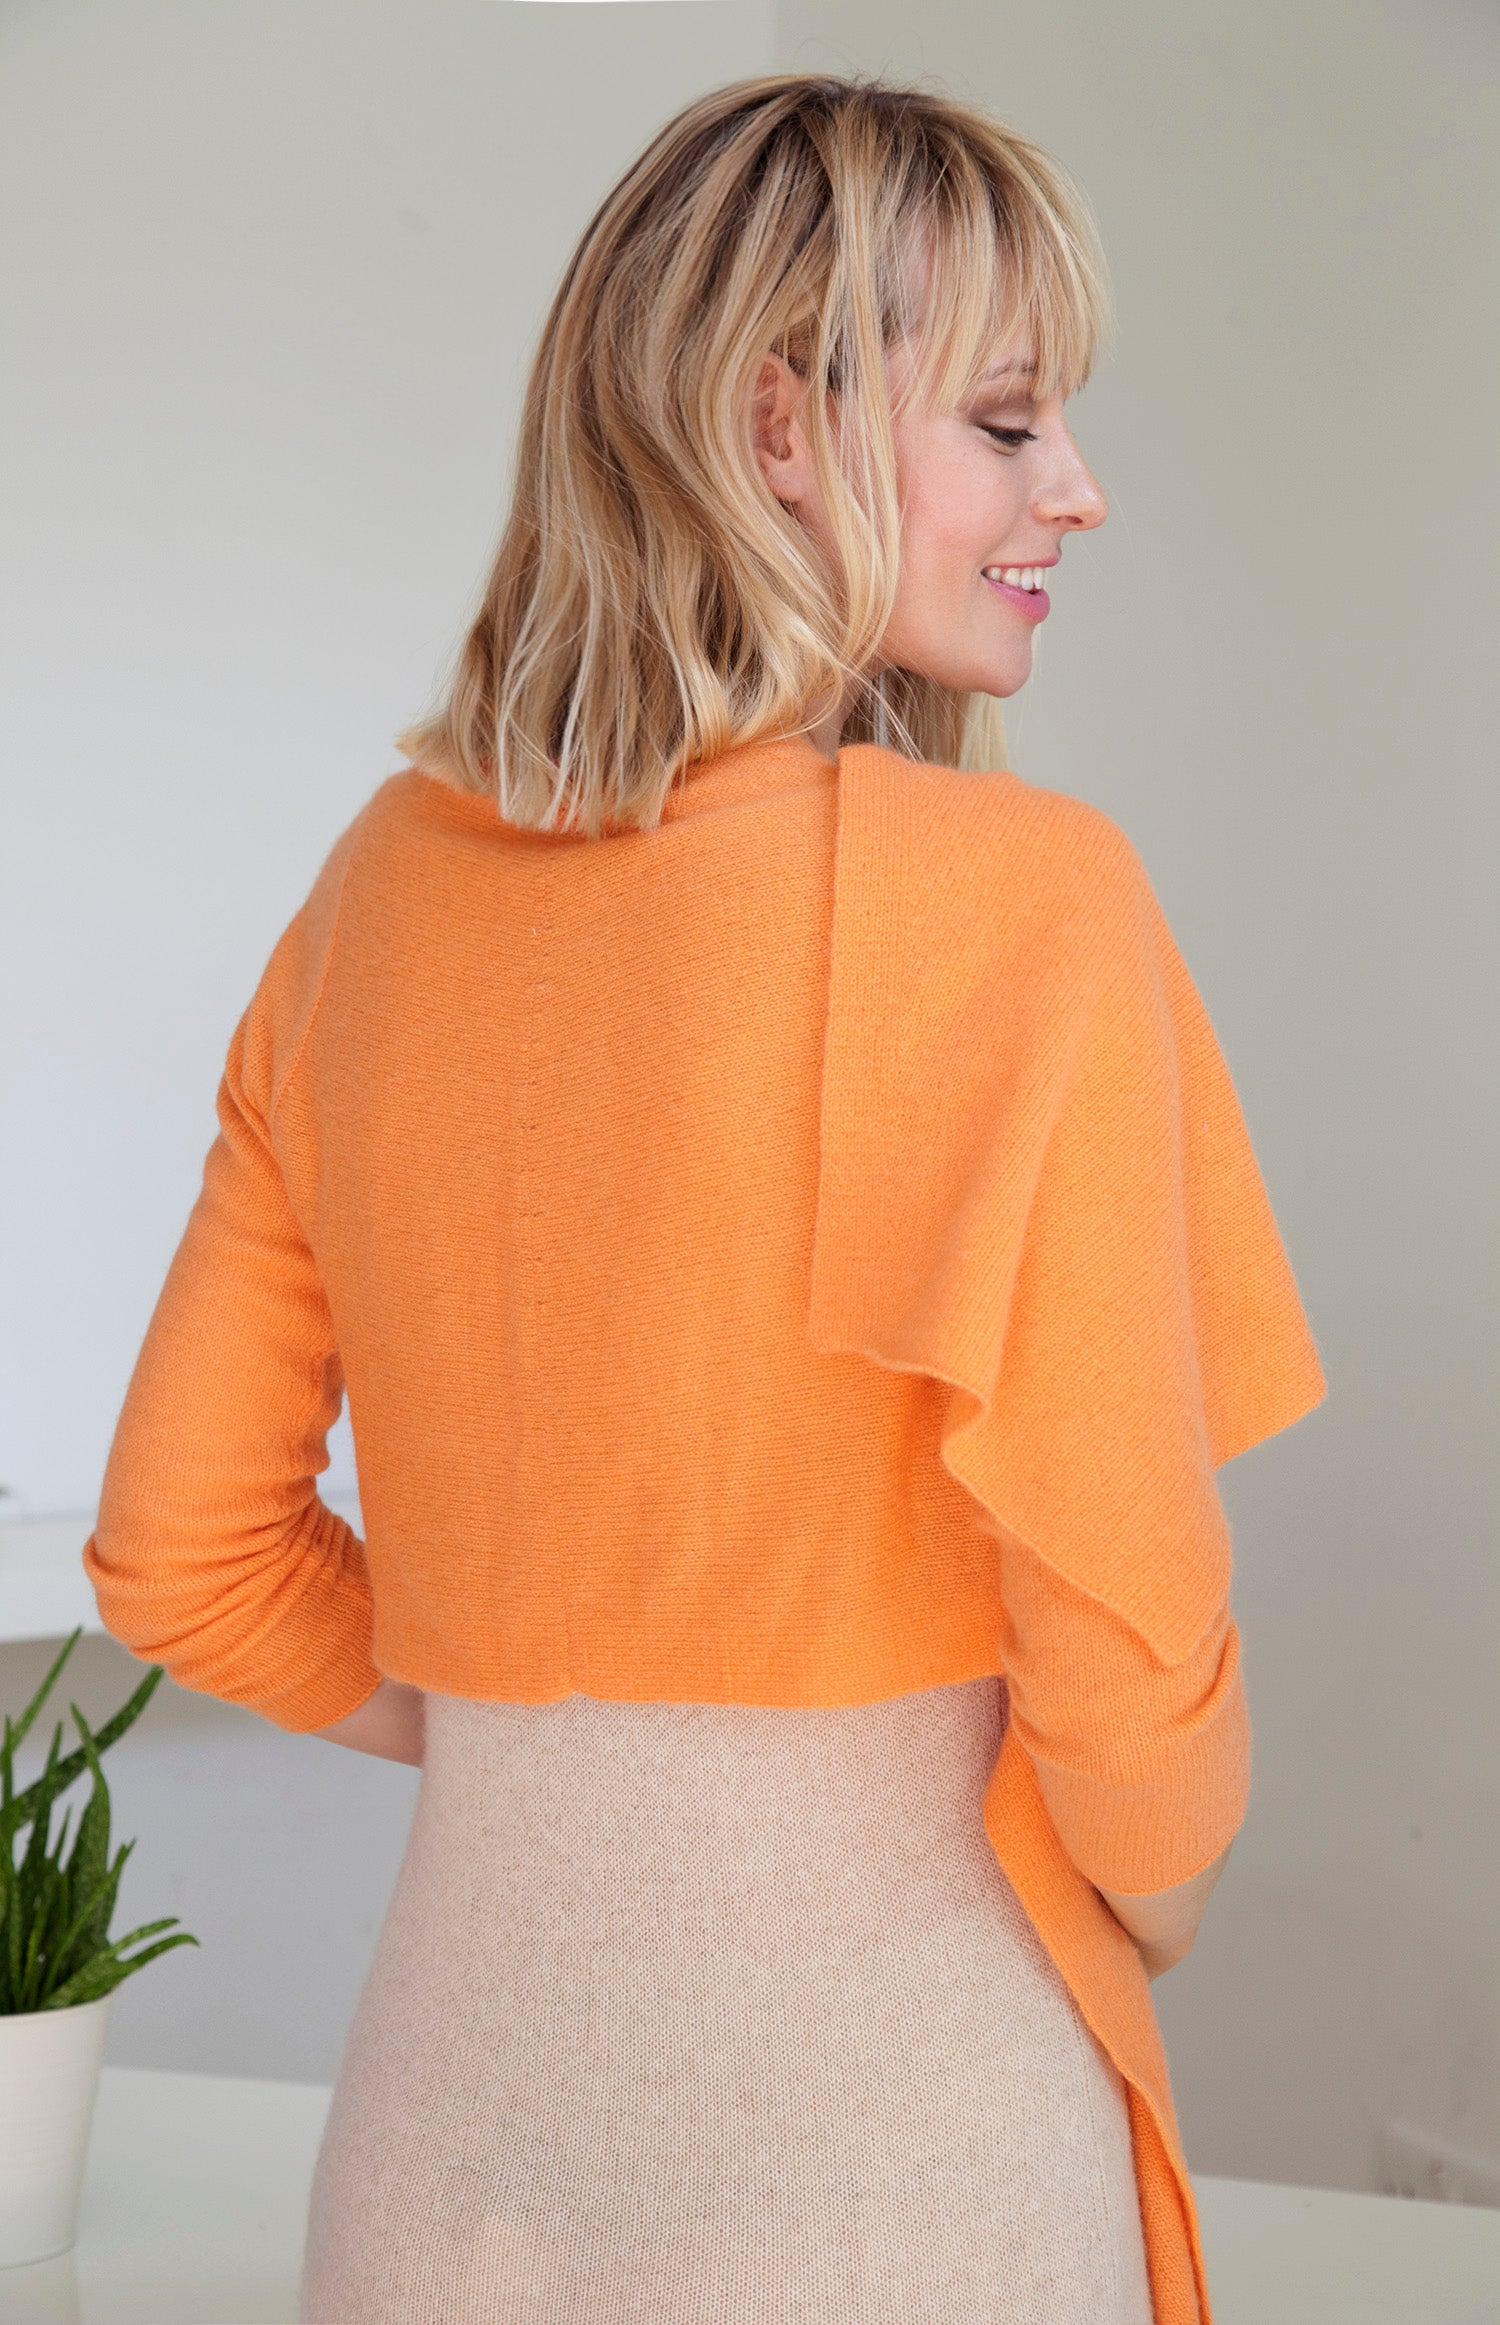 Long front light weight cashmere cardigan in soft orange